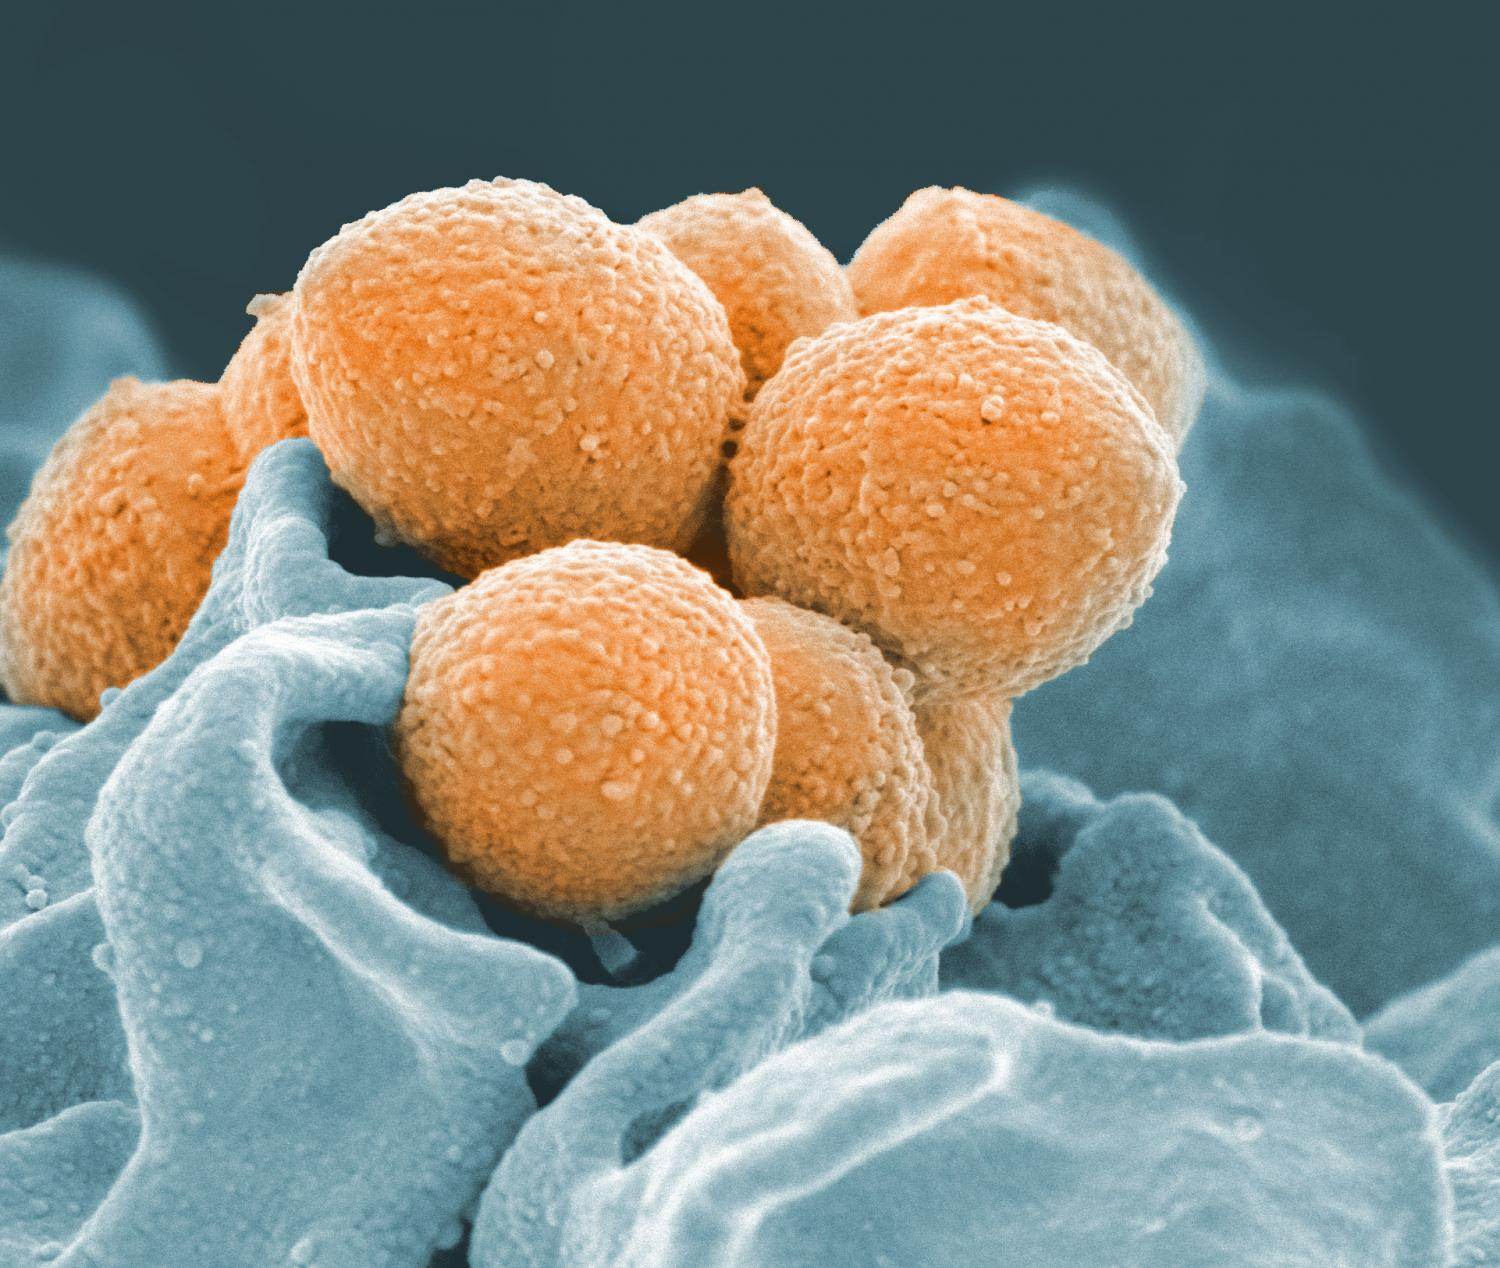 Strep A bacteria kill a half-million people a year. Why don't we have a vaccine?